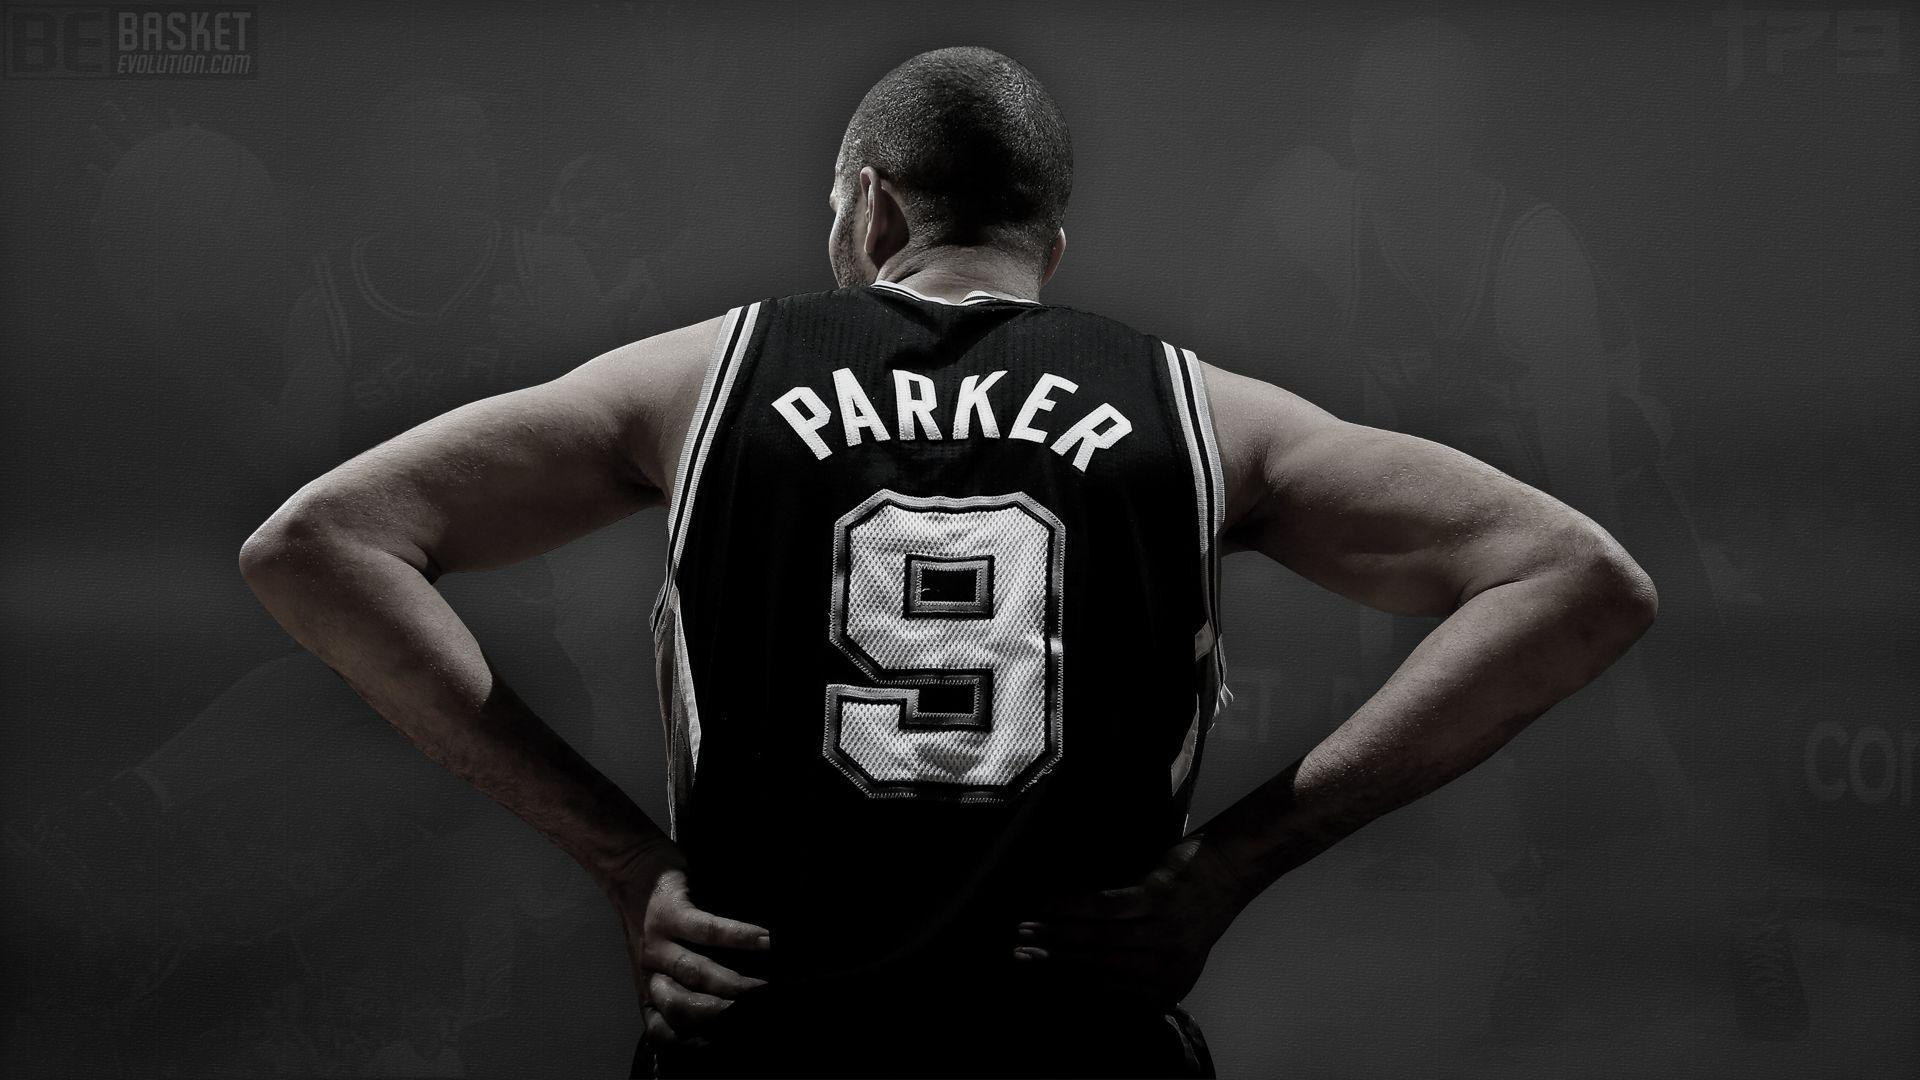 Basketball player Tony Parker wallpapers and images - wallpapers ...